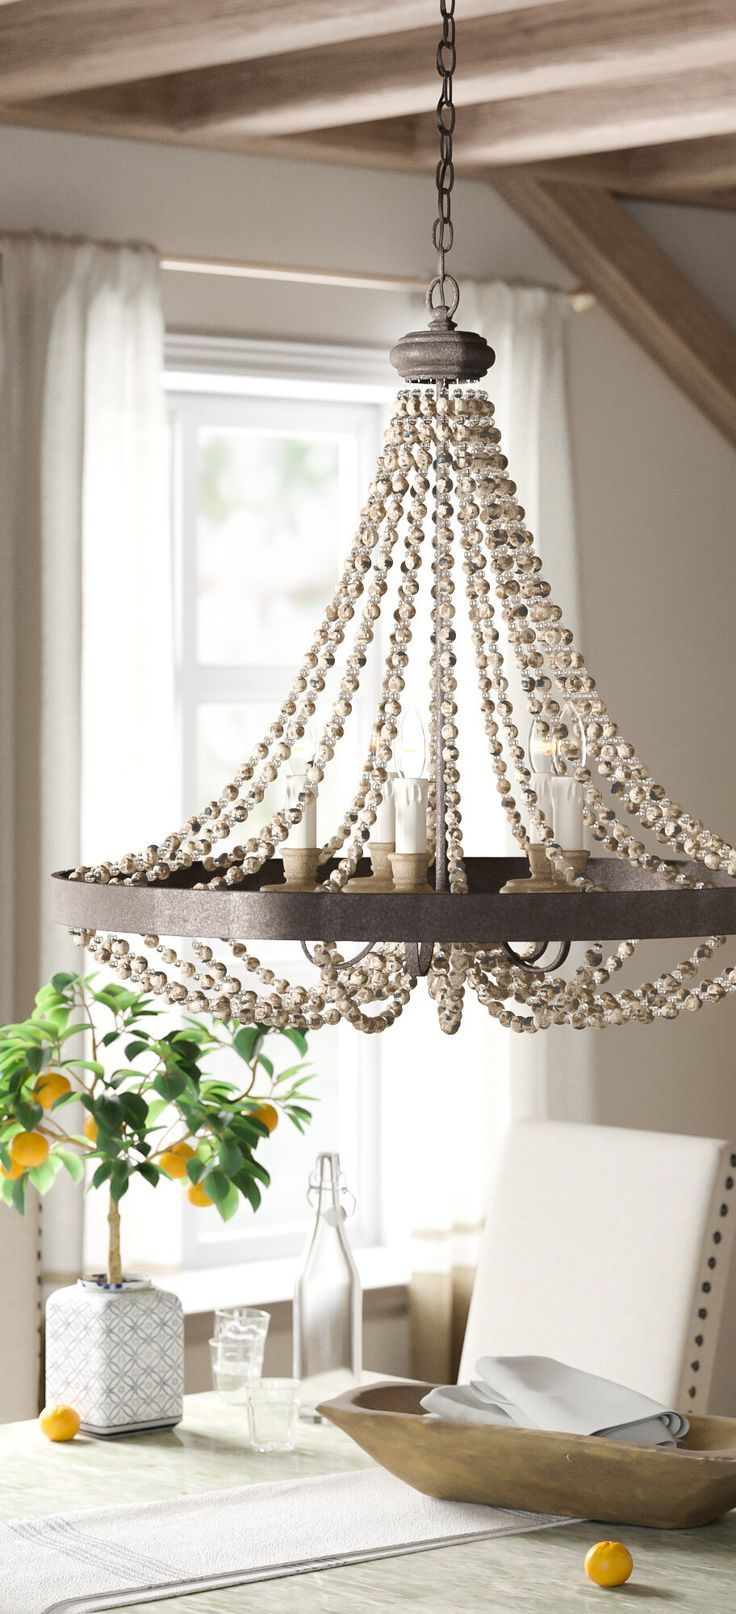 Photo of Farmhouse Empire Chandelier | Ladonna 5-Light Chrystal Chand…